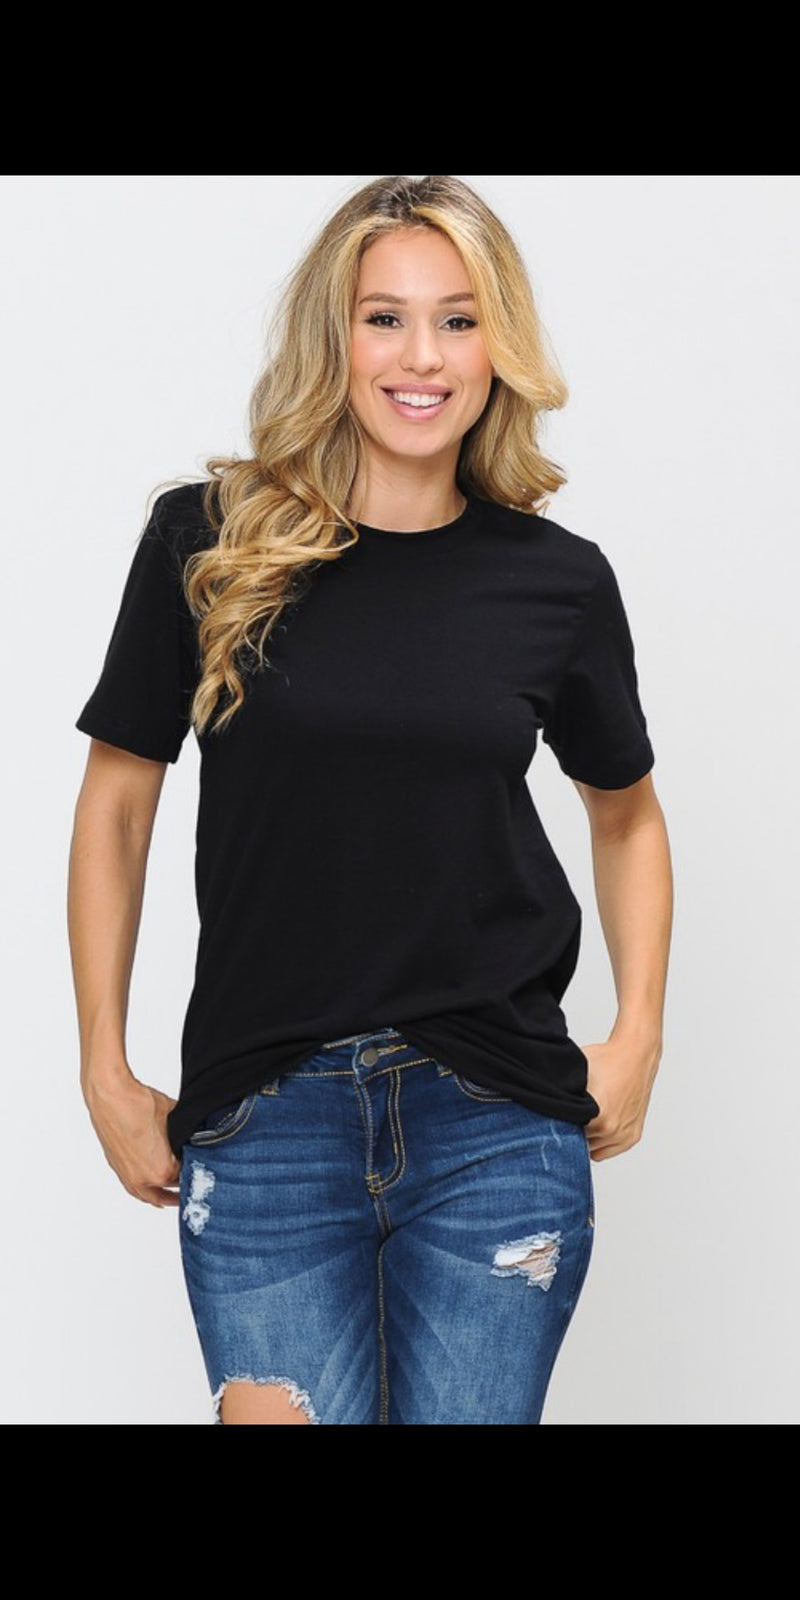 Classic Black Top - Also in Plus Size